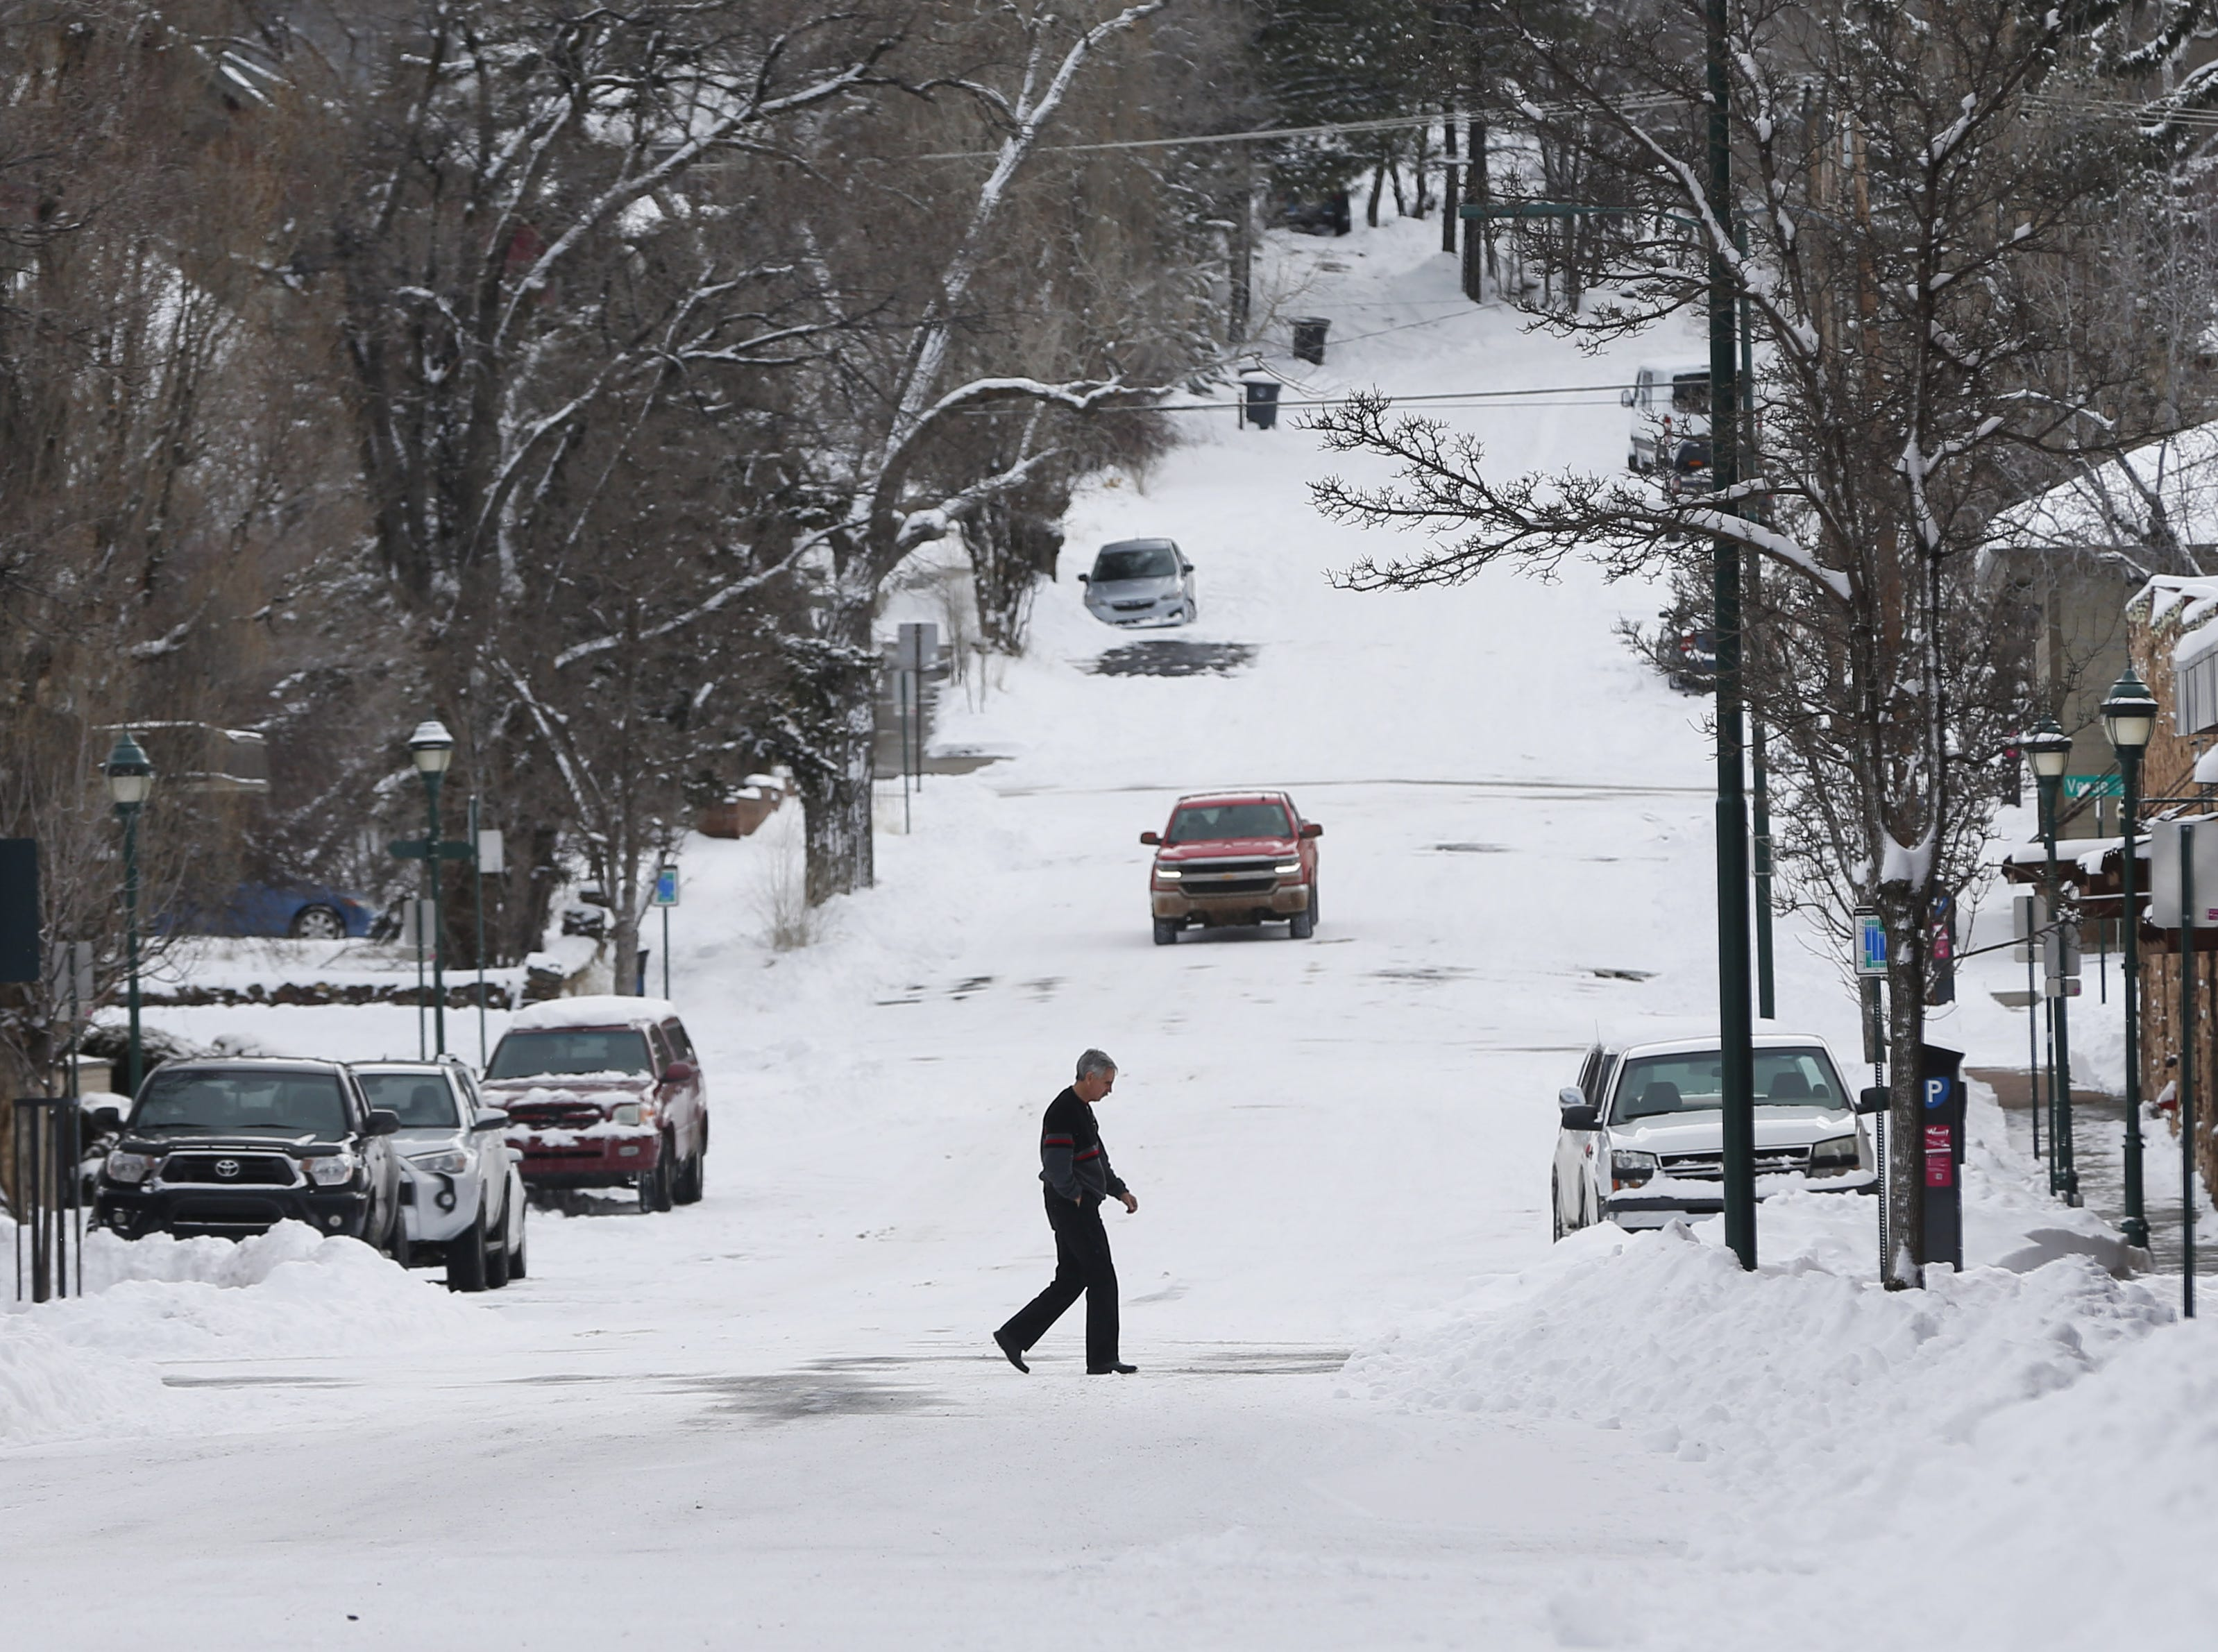 A pedestrian walks in the snow in downtown Flagstaff Feb. 18, 2019.